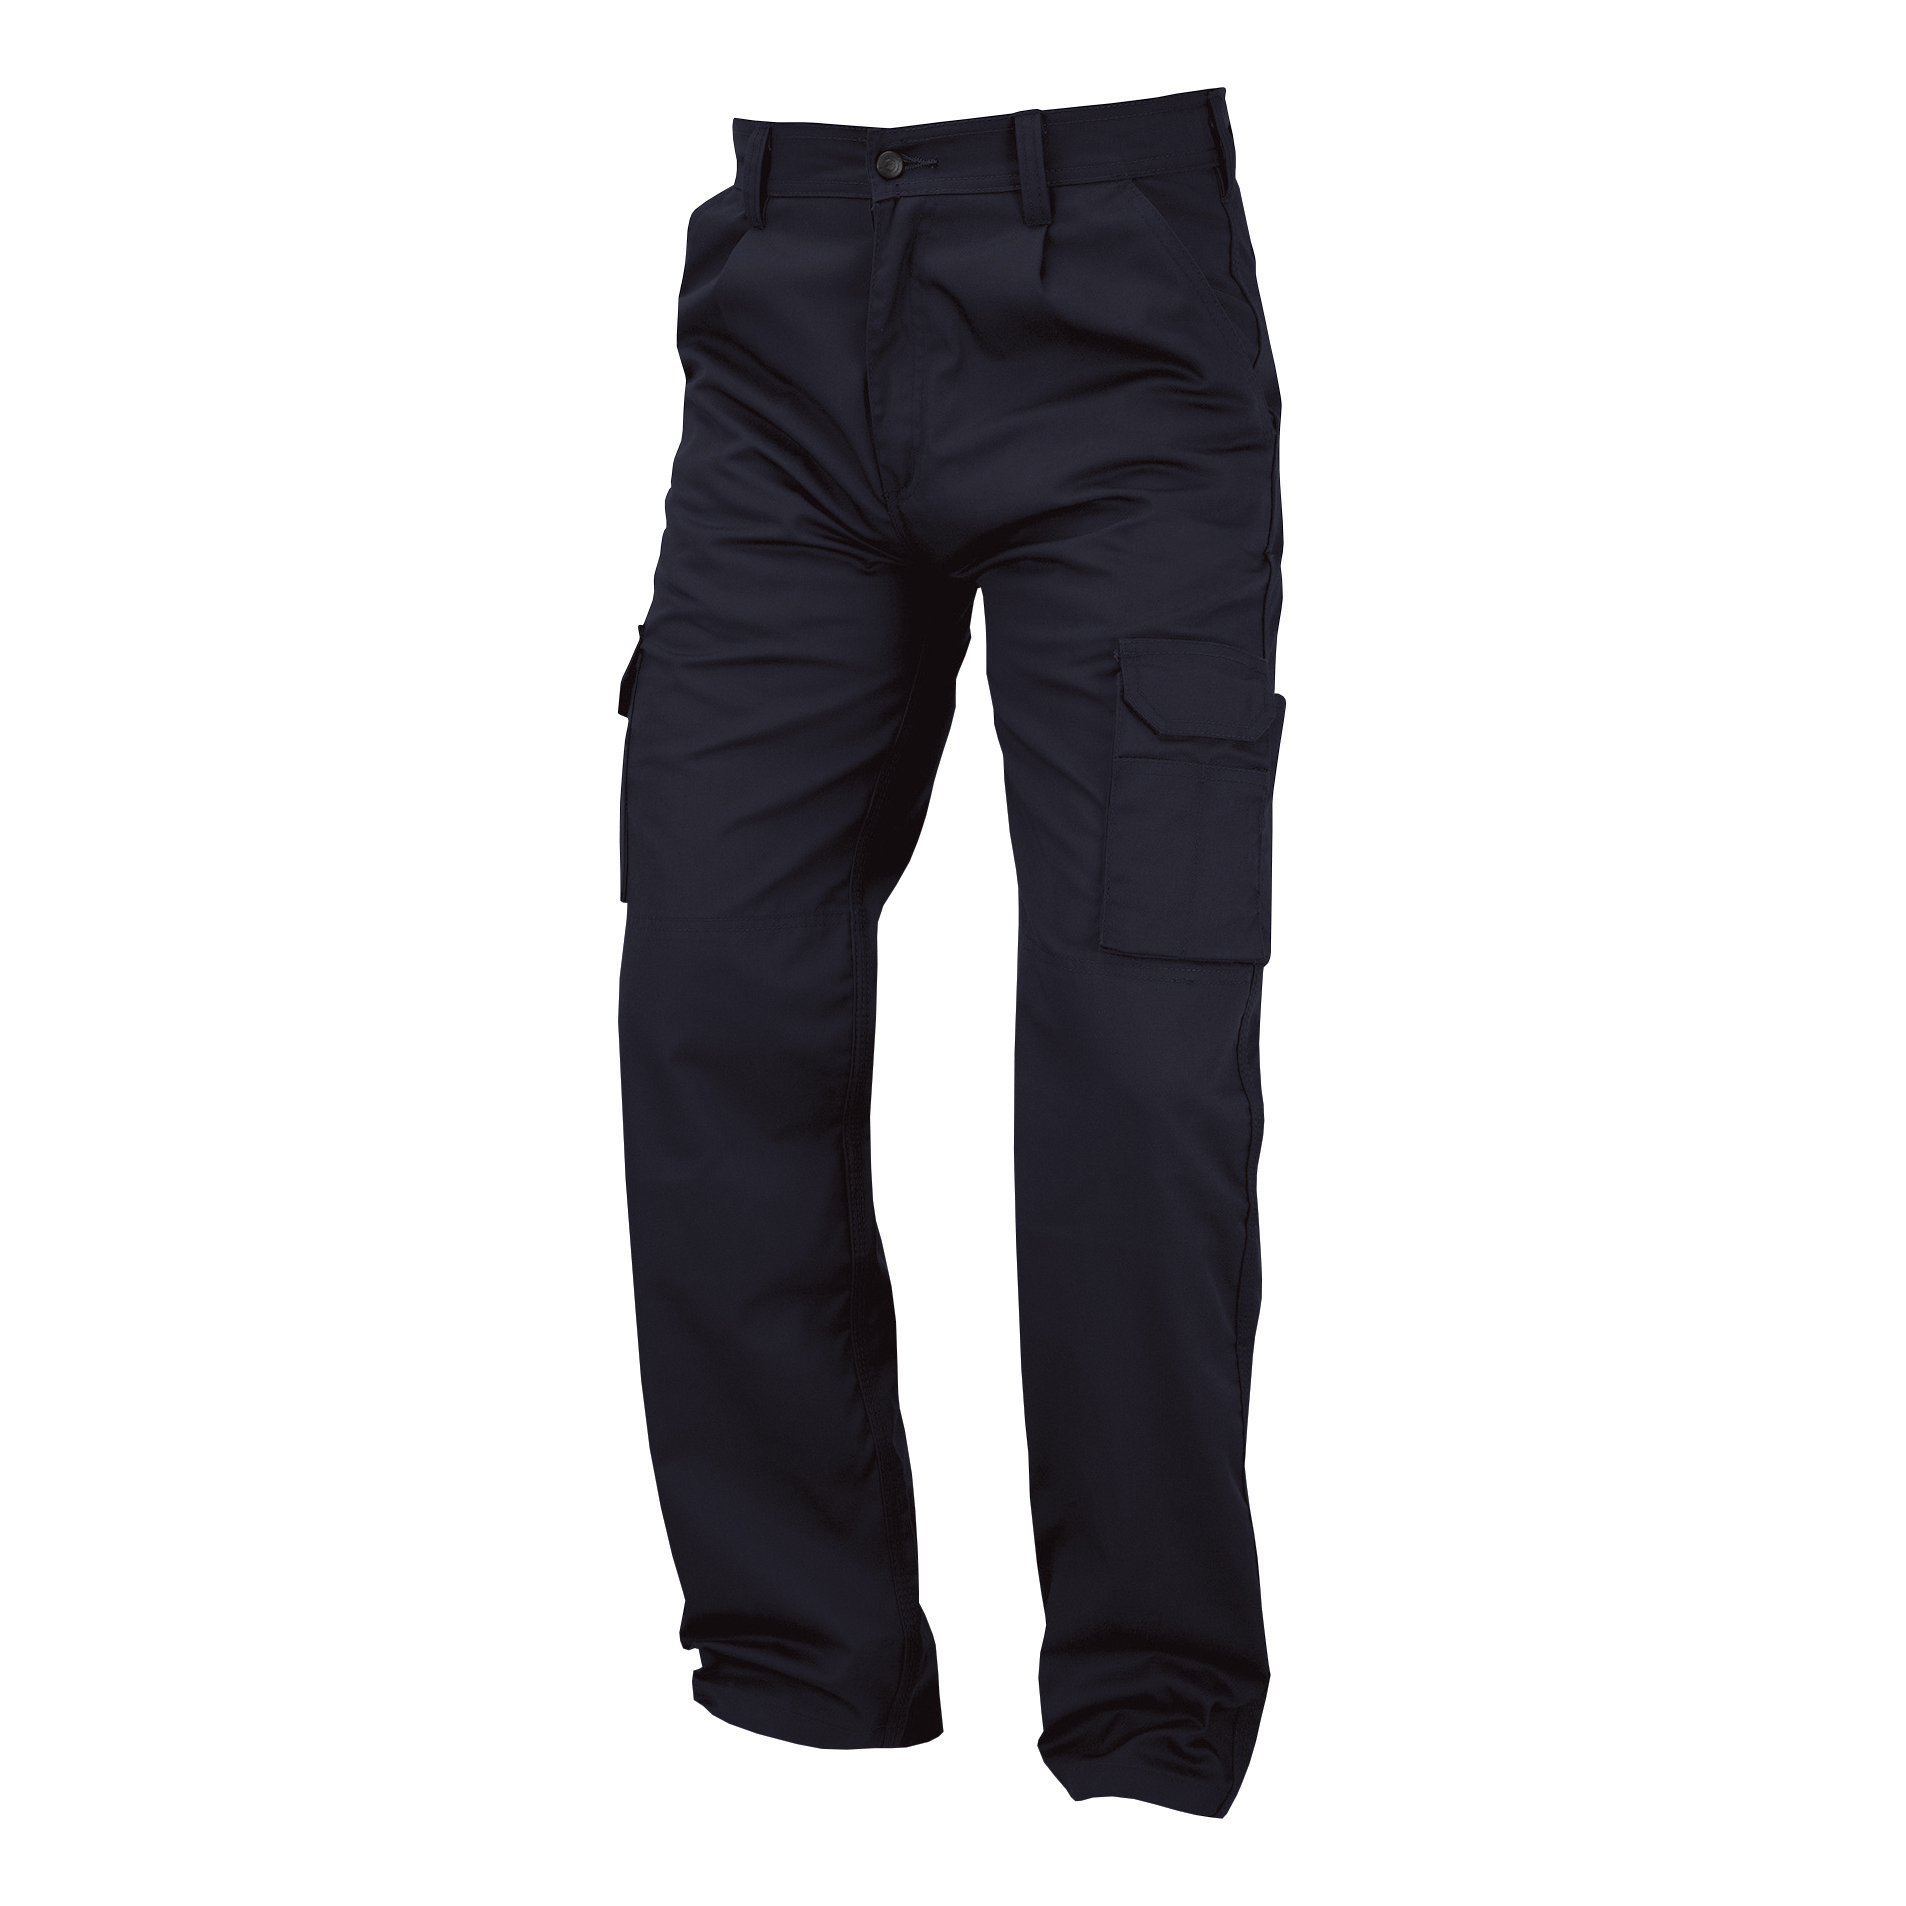 Combat Trouser Multi-functional Waist 42in Leg 29in Navy Ref PCTHWN42S *Approx 3 Day Leadtime*